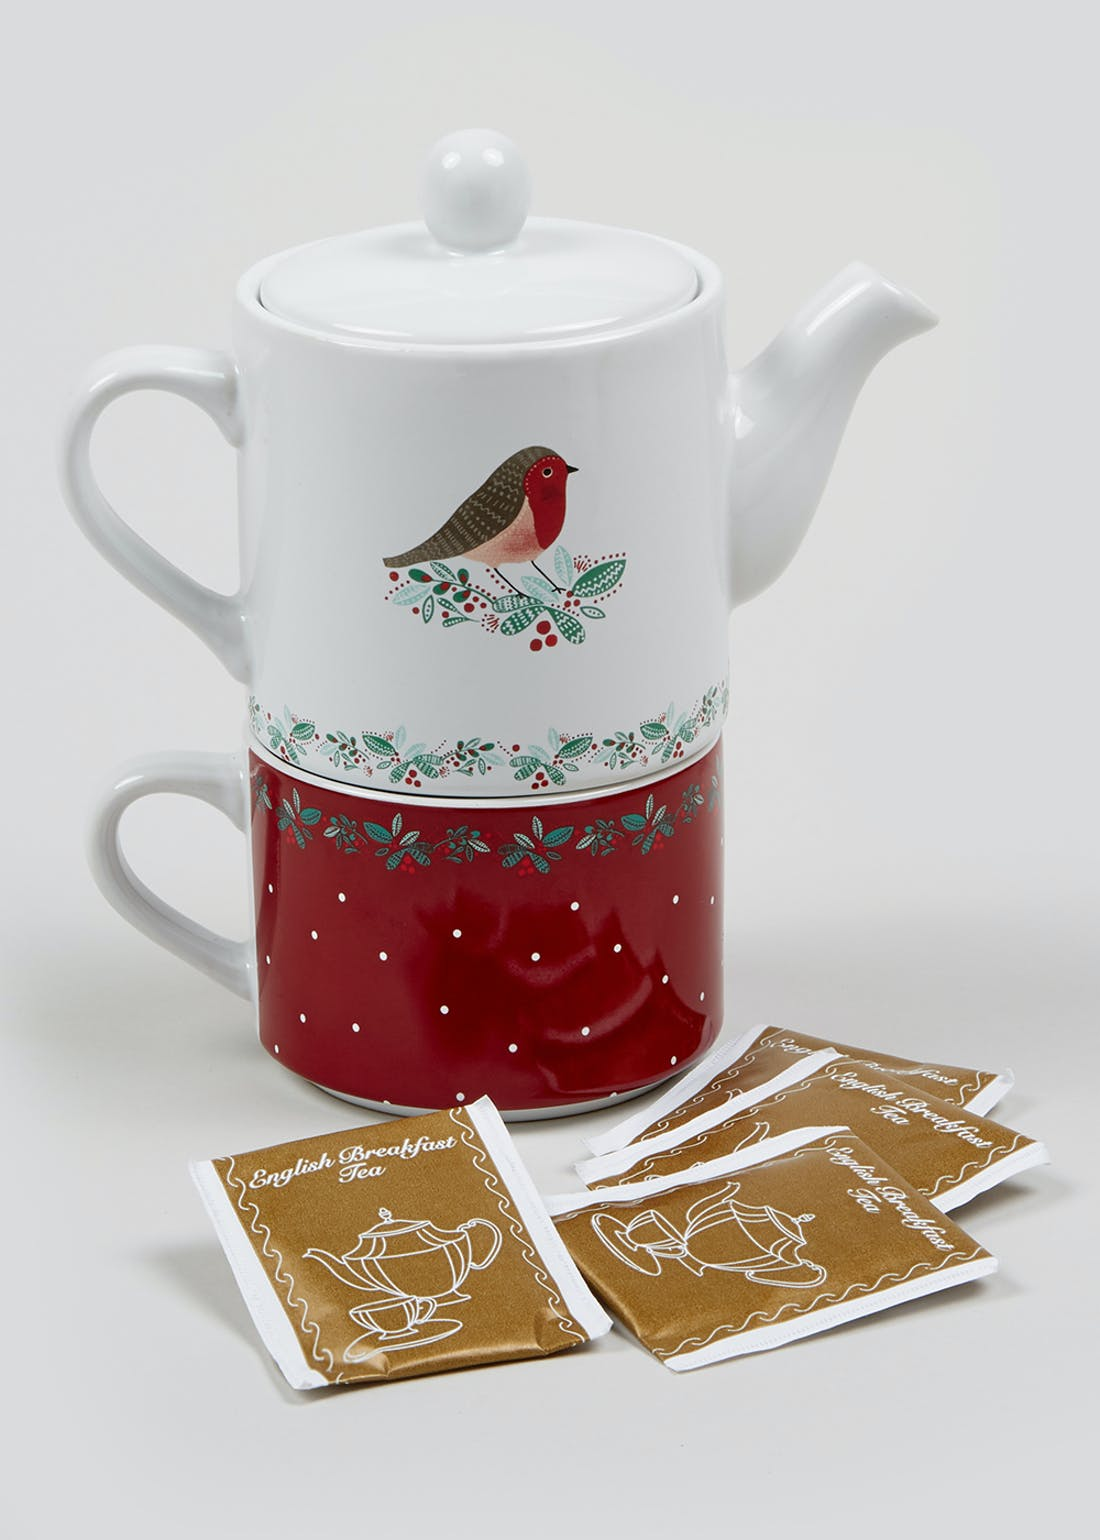 Tea for One Christmas Gift Set (18.5cm x 17cm x 9cm)